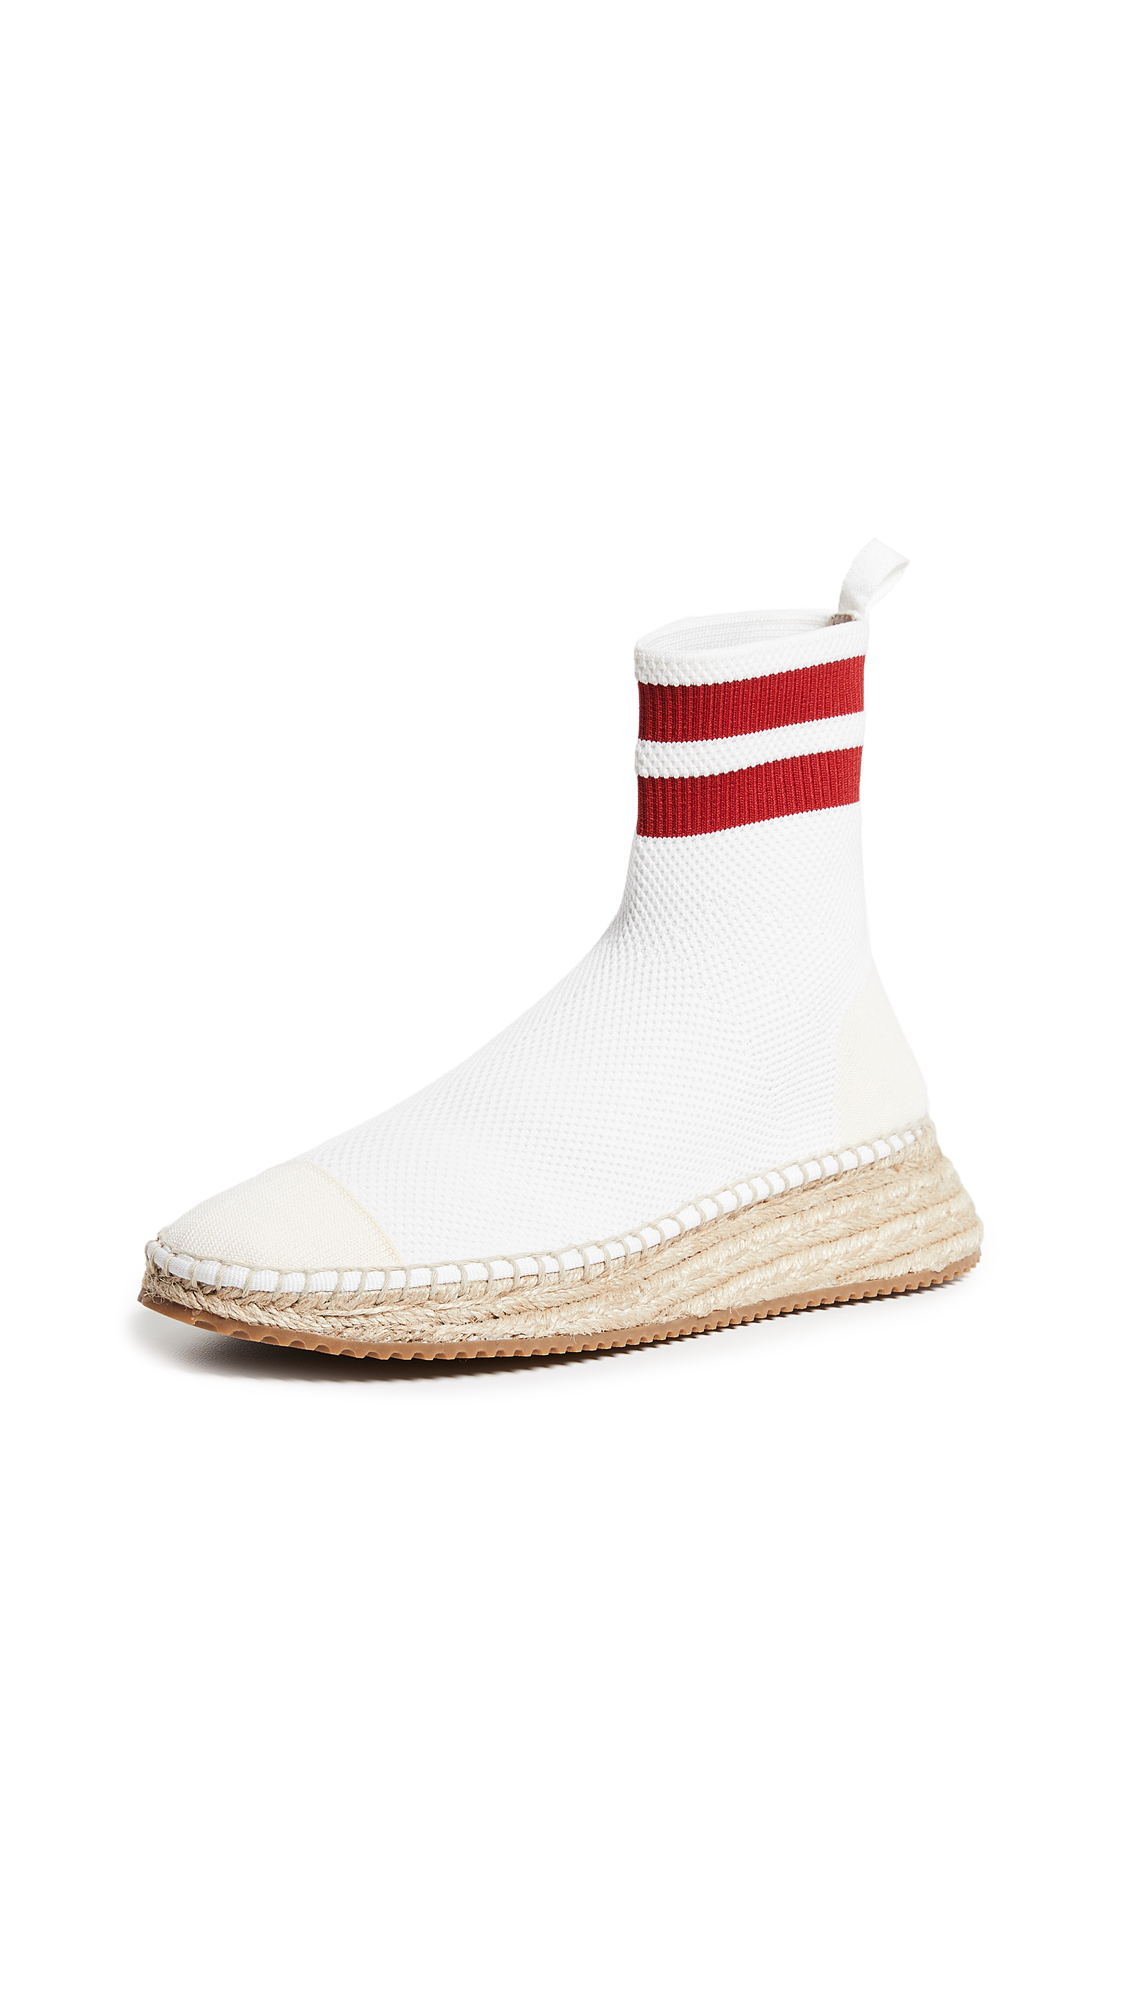 Alexander Wang Dylan Knit Espadrilles - White/Red